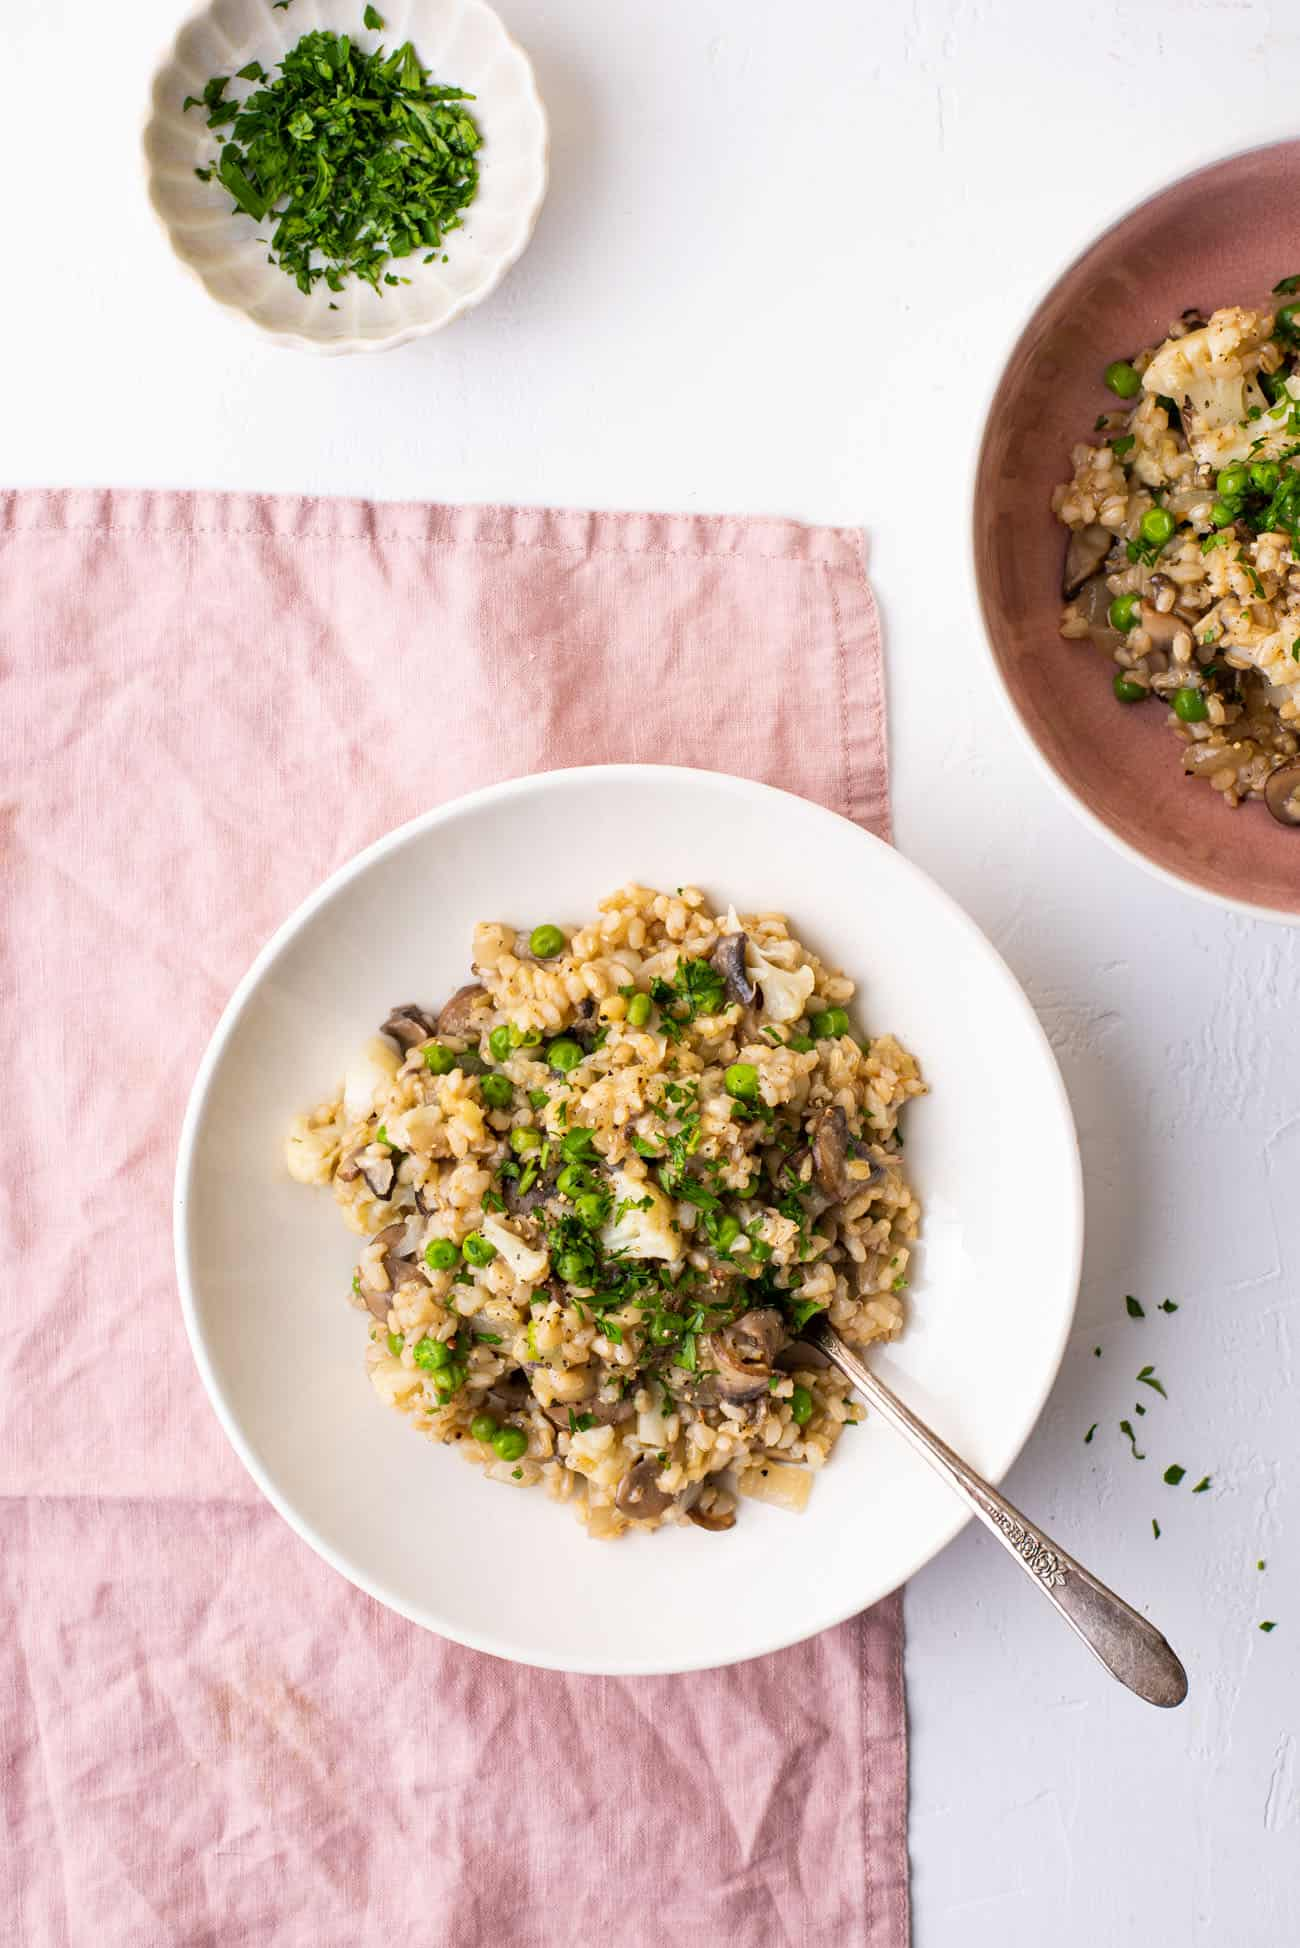 2 bowls of Vegan Mushroom Risotto with Cauliflower and Peas on a pink tablecloth, sprinkled with parsley